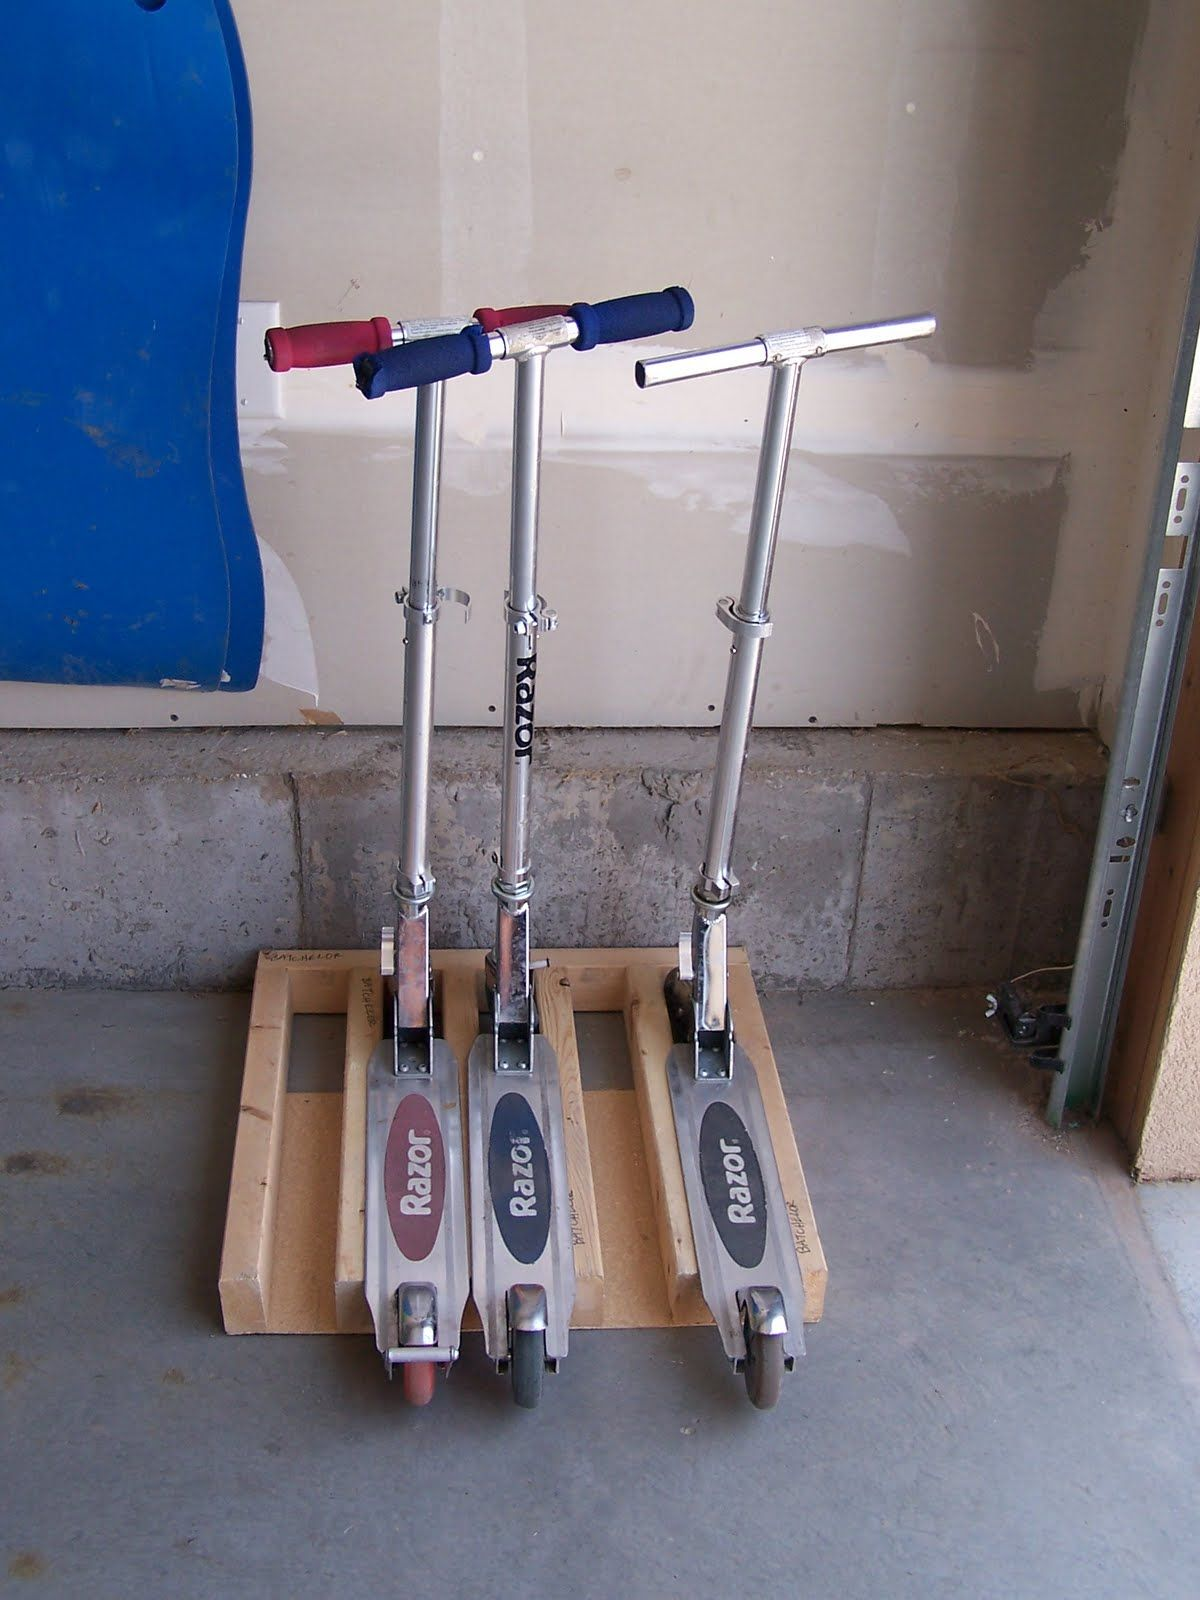 25 totally clever garage organization tips and tricks on best garage organization and storage hacks ideas start for organizing your garage id=82305